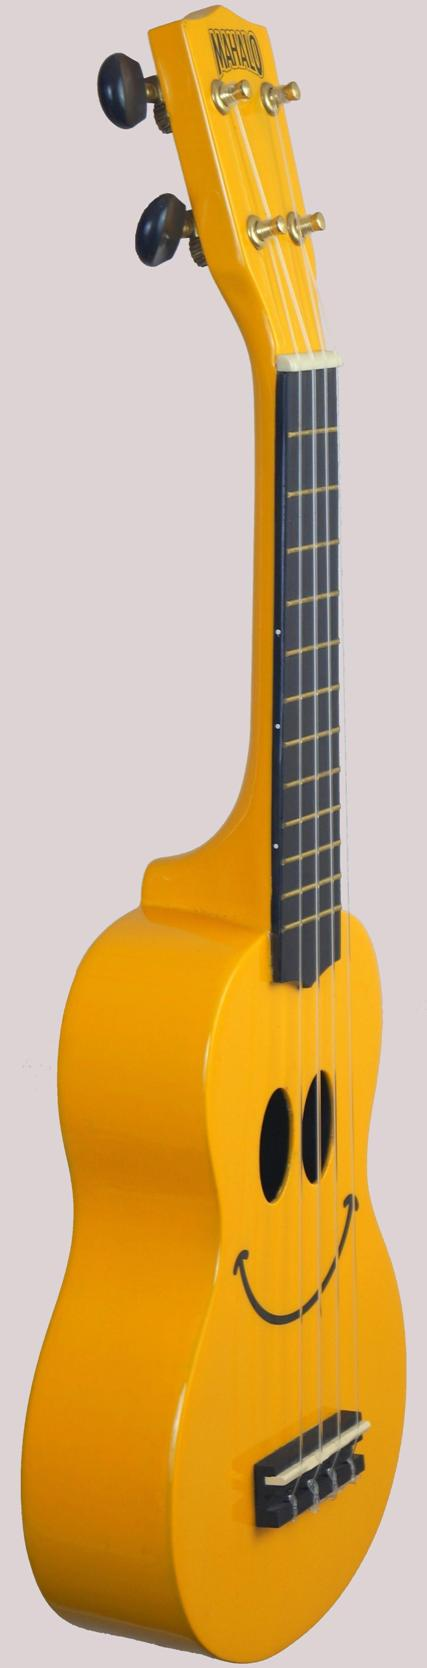 Chinese yellow smiley Ukulele